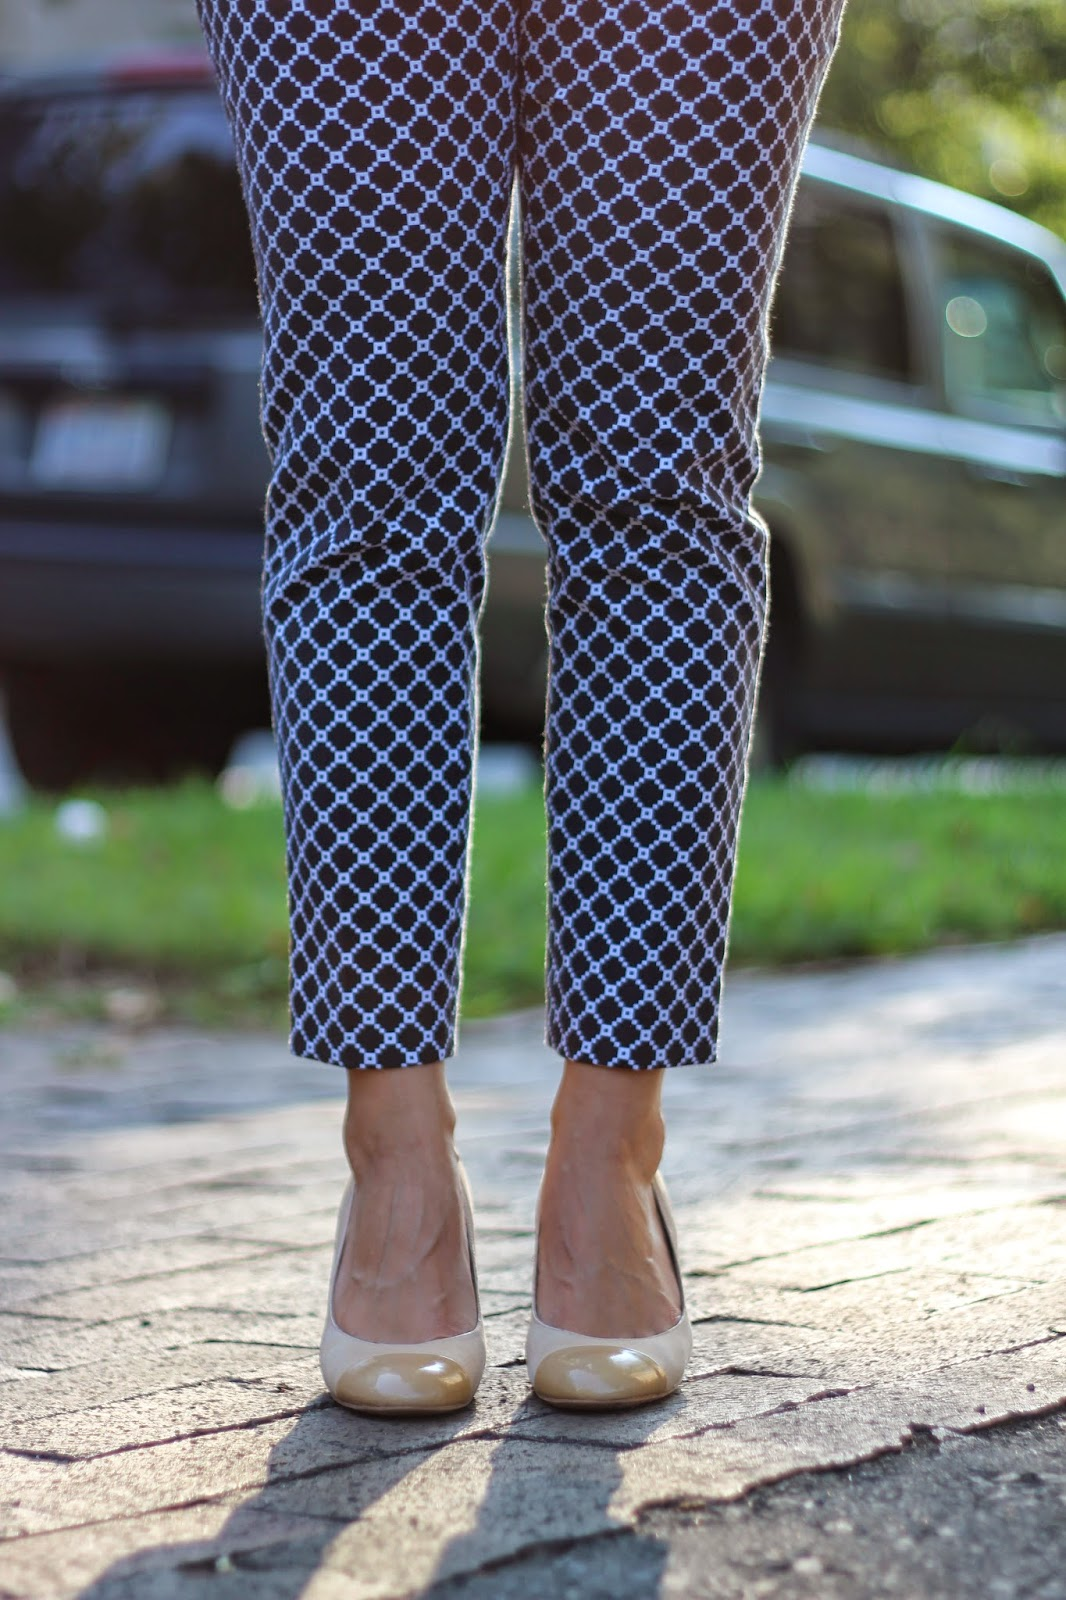 2019 year for girls- How to blue wear patterned pants